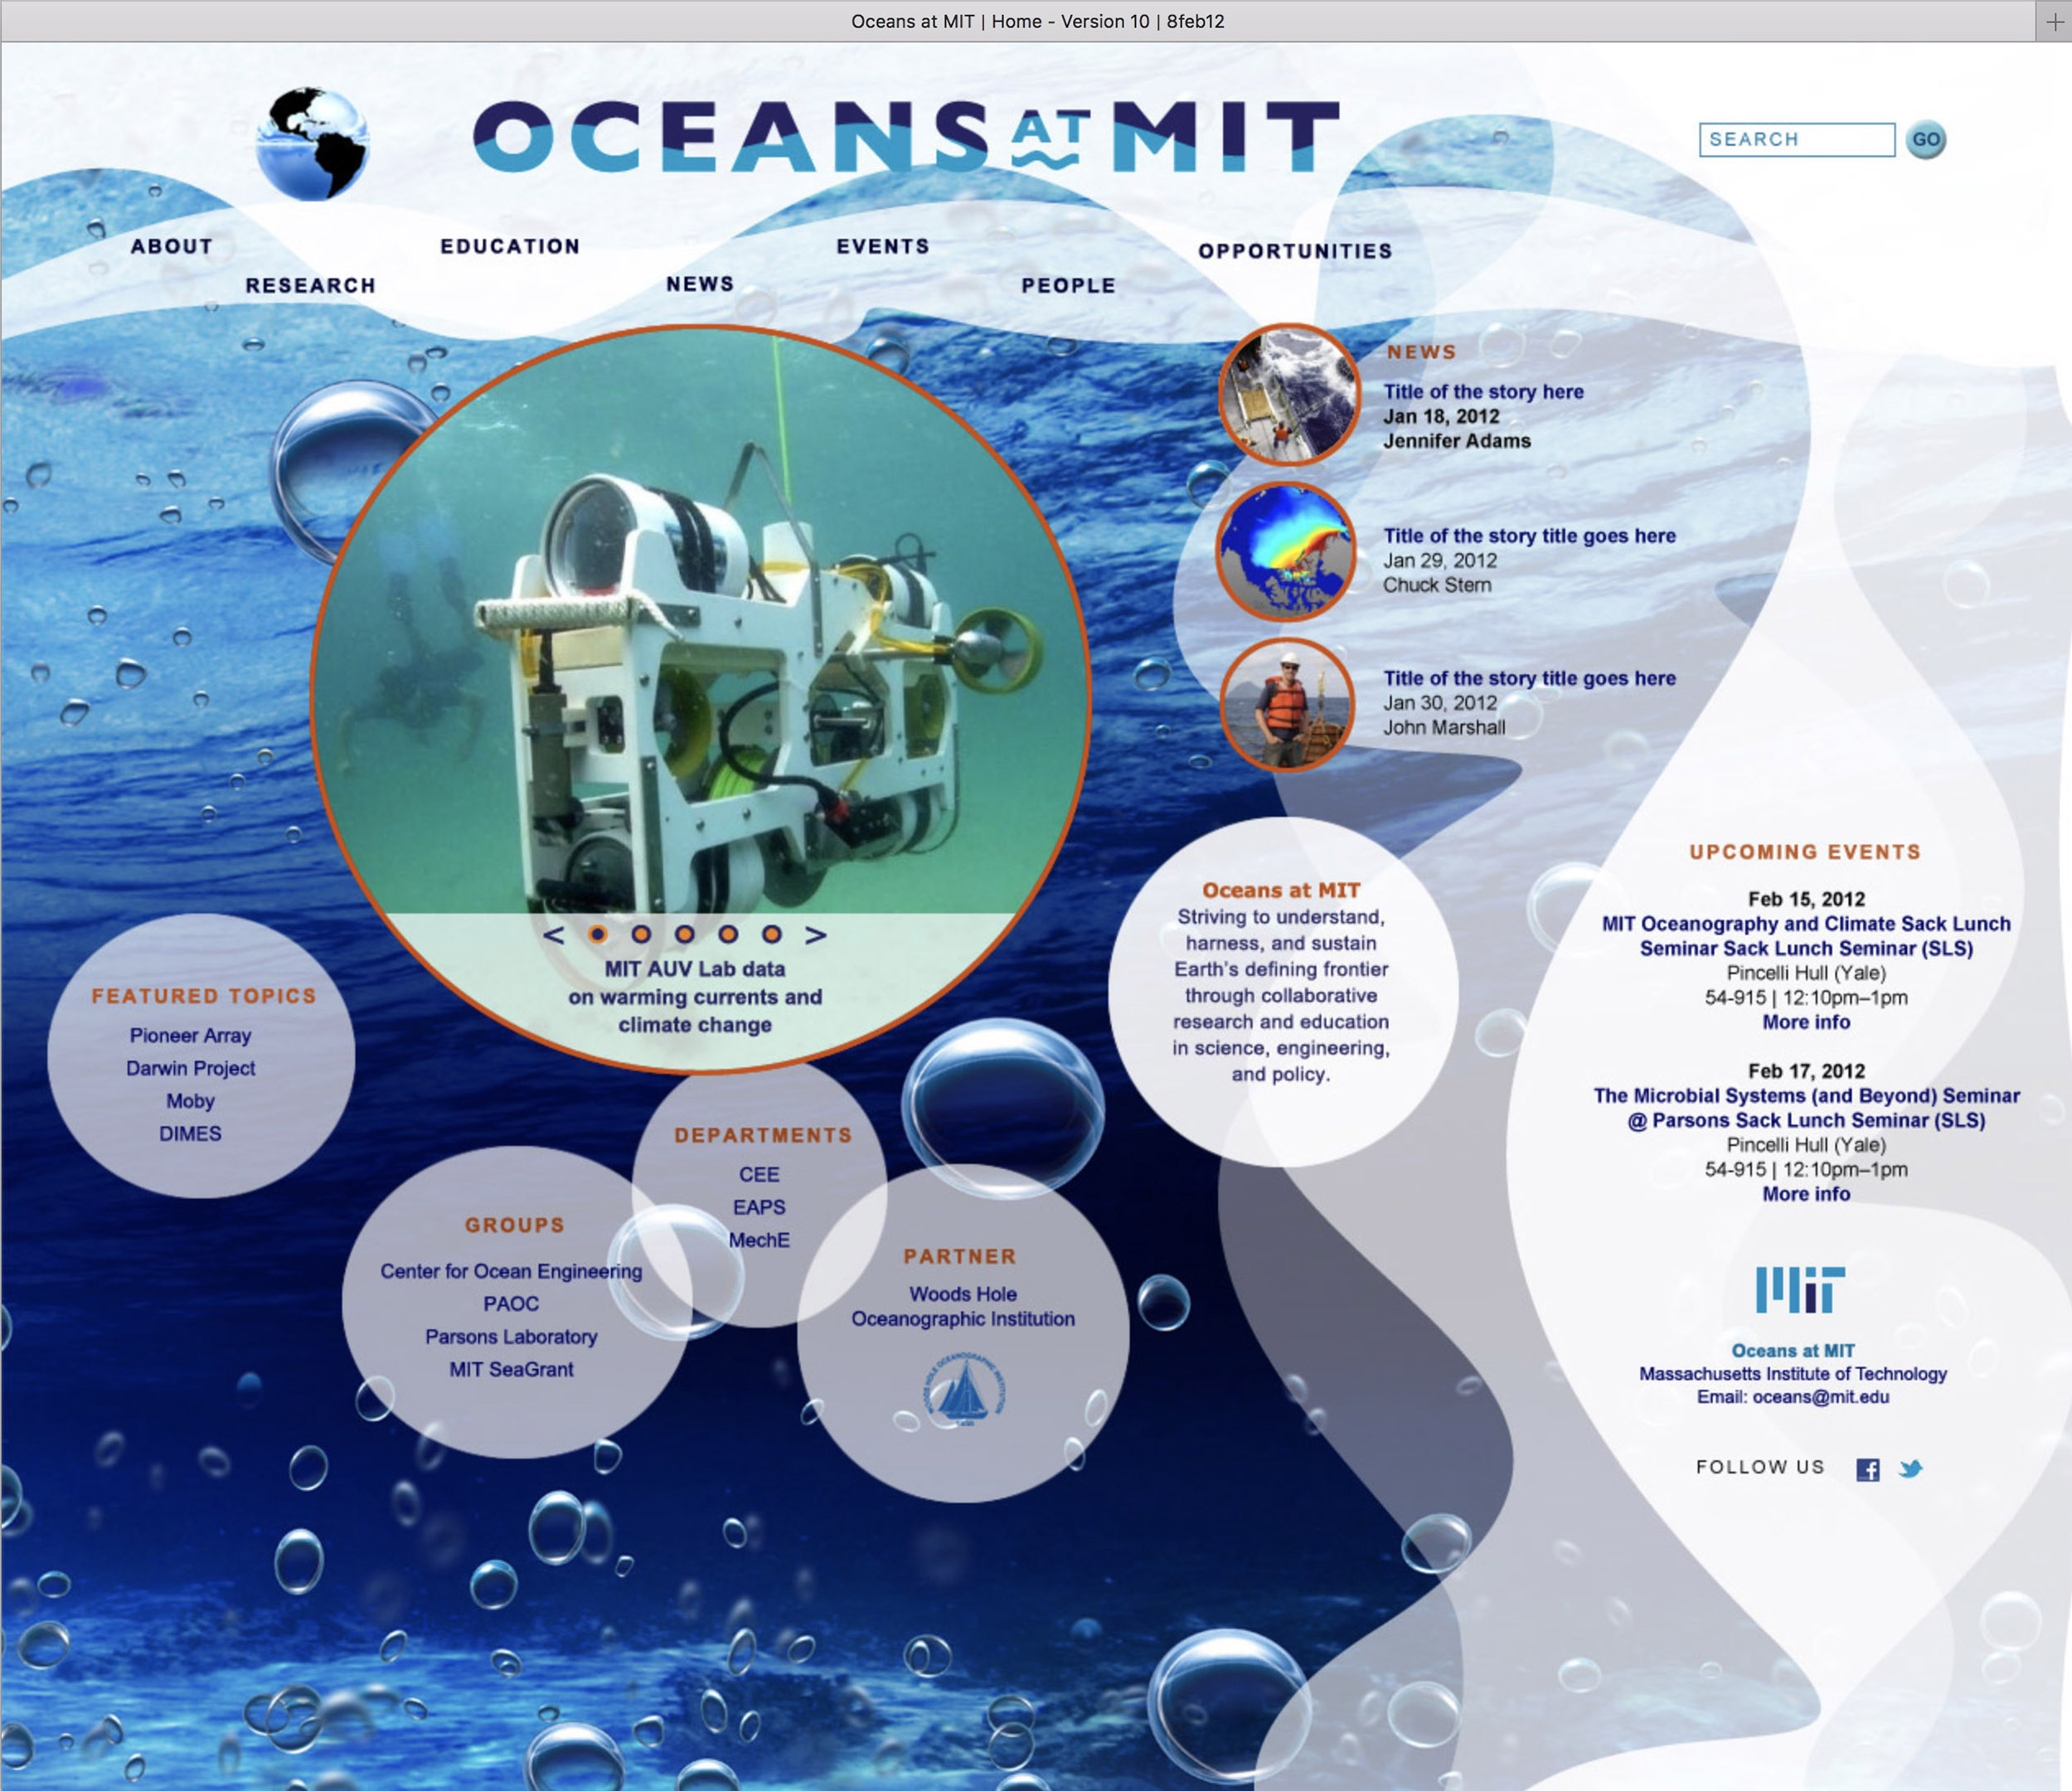 Mockup for Oceans at MIT website, 1 of 3